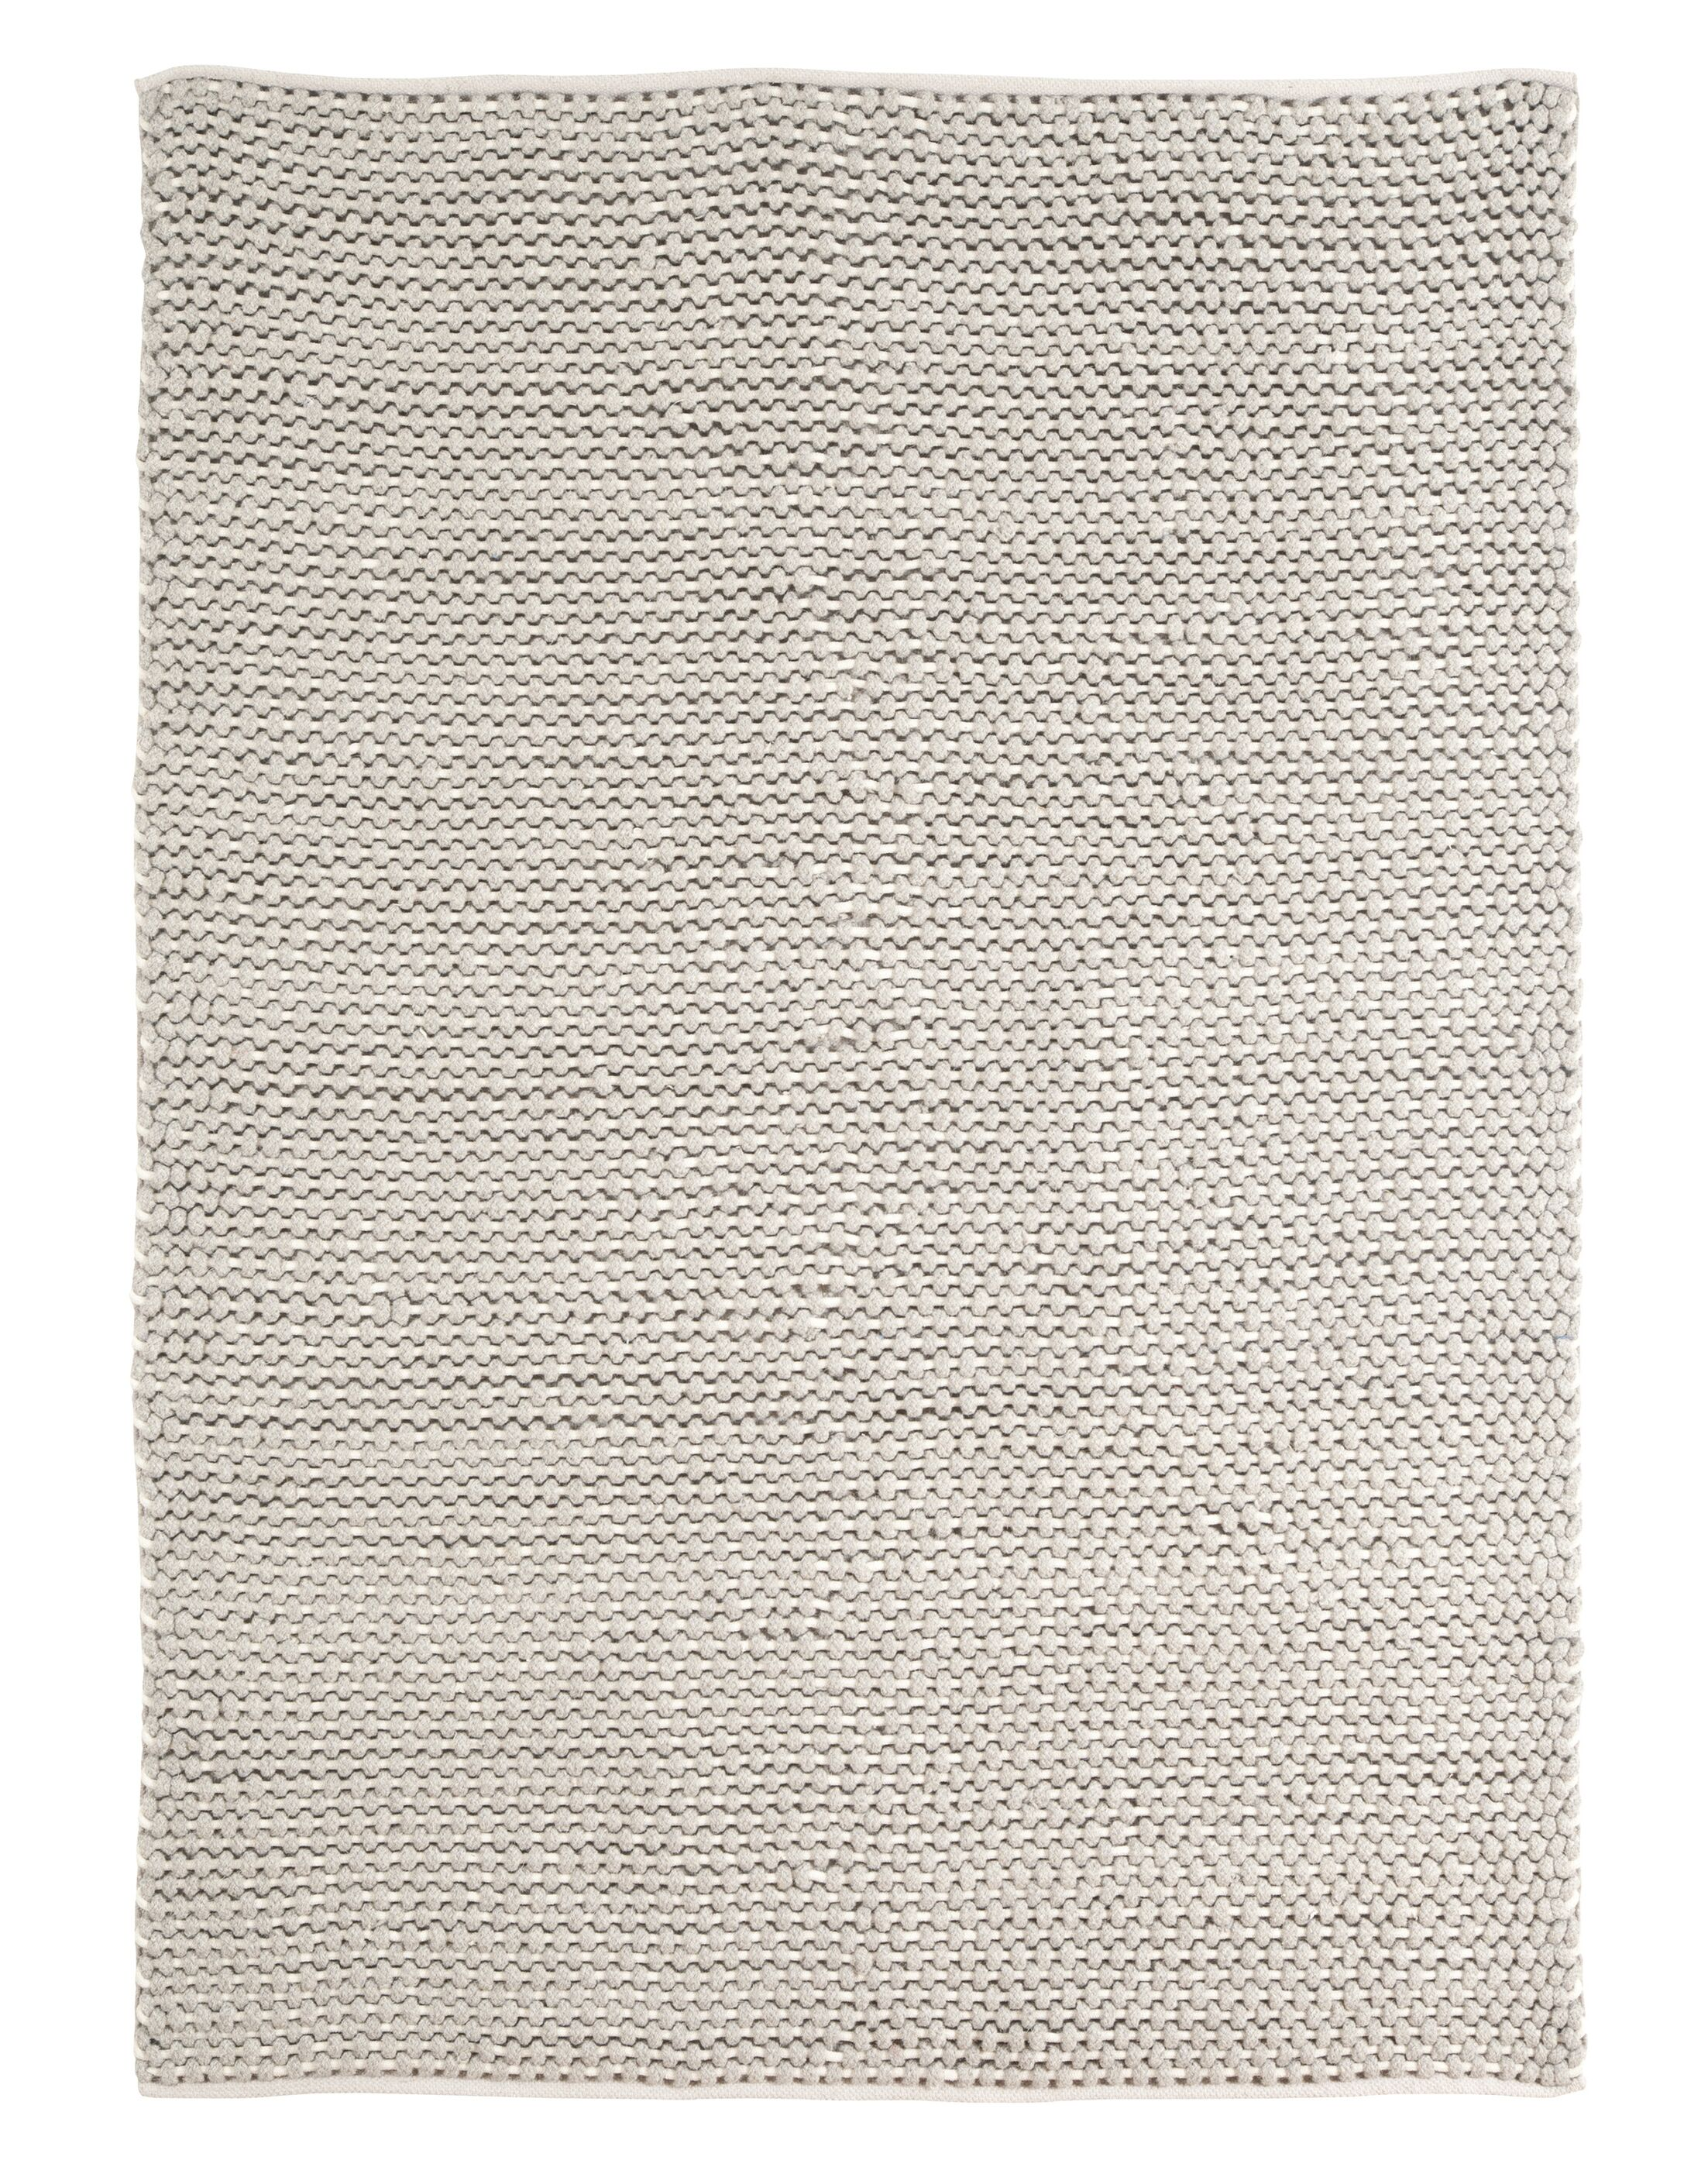 Delmont Hand-Woven Wool Natural Area Rug Rug Size: Rectangle 8' x 11'